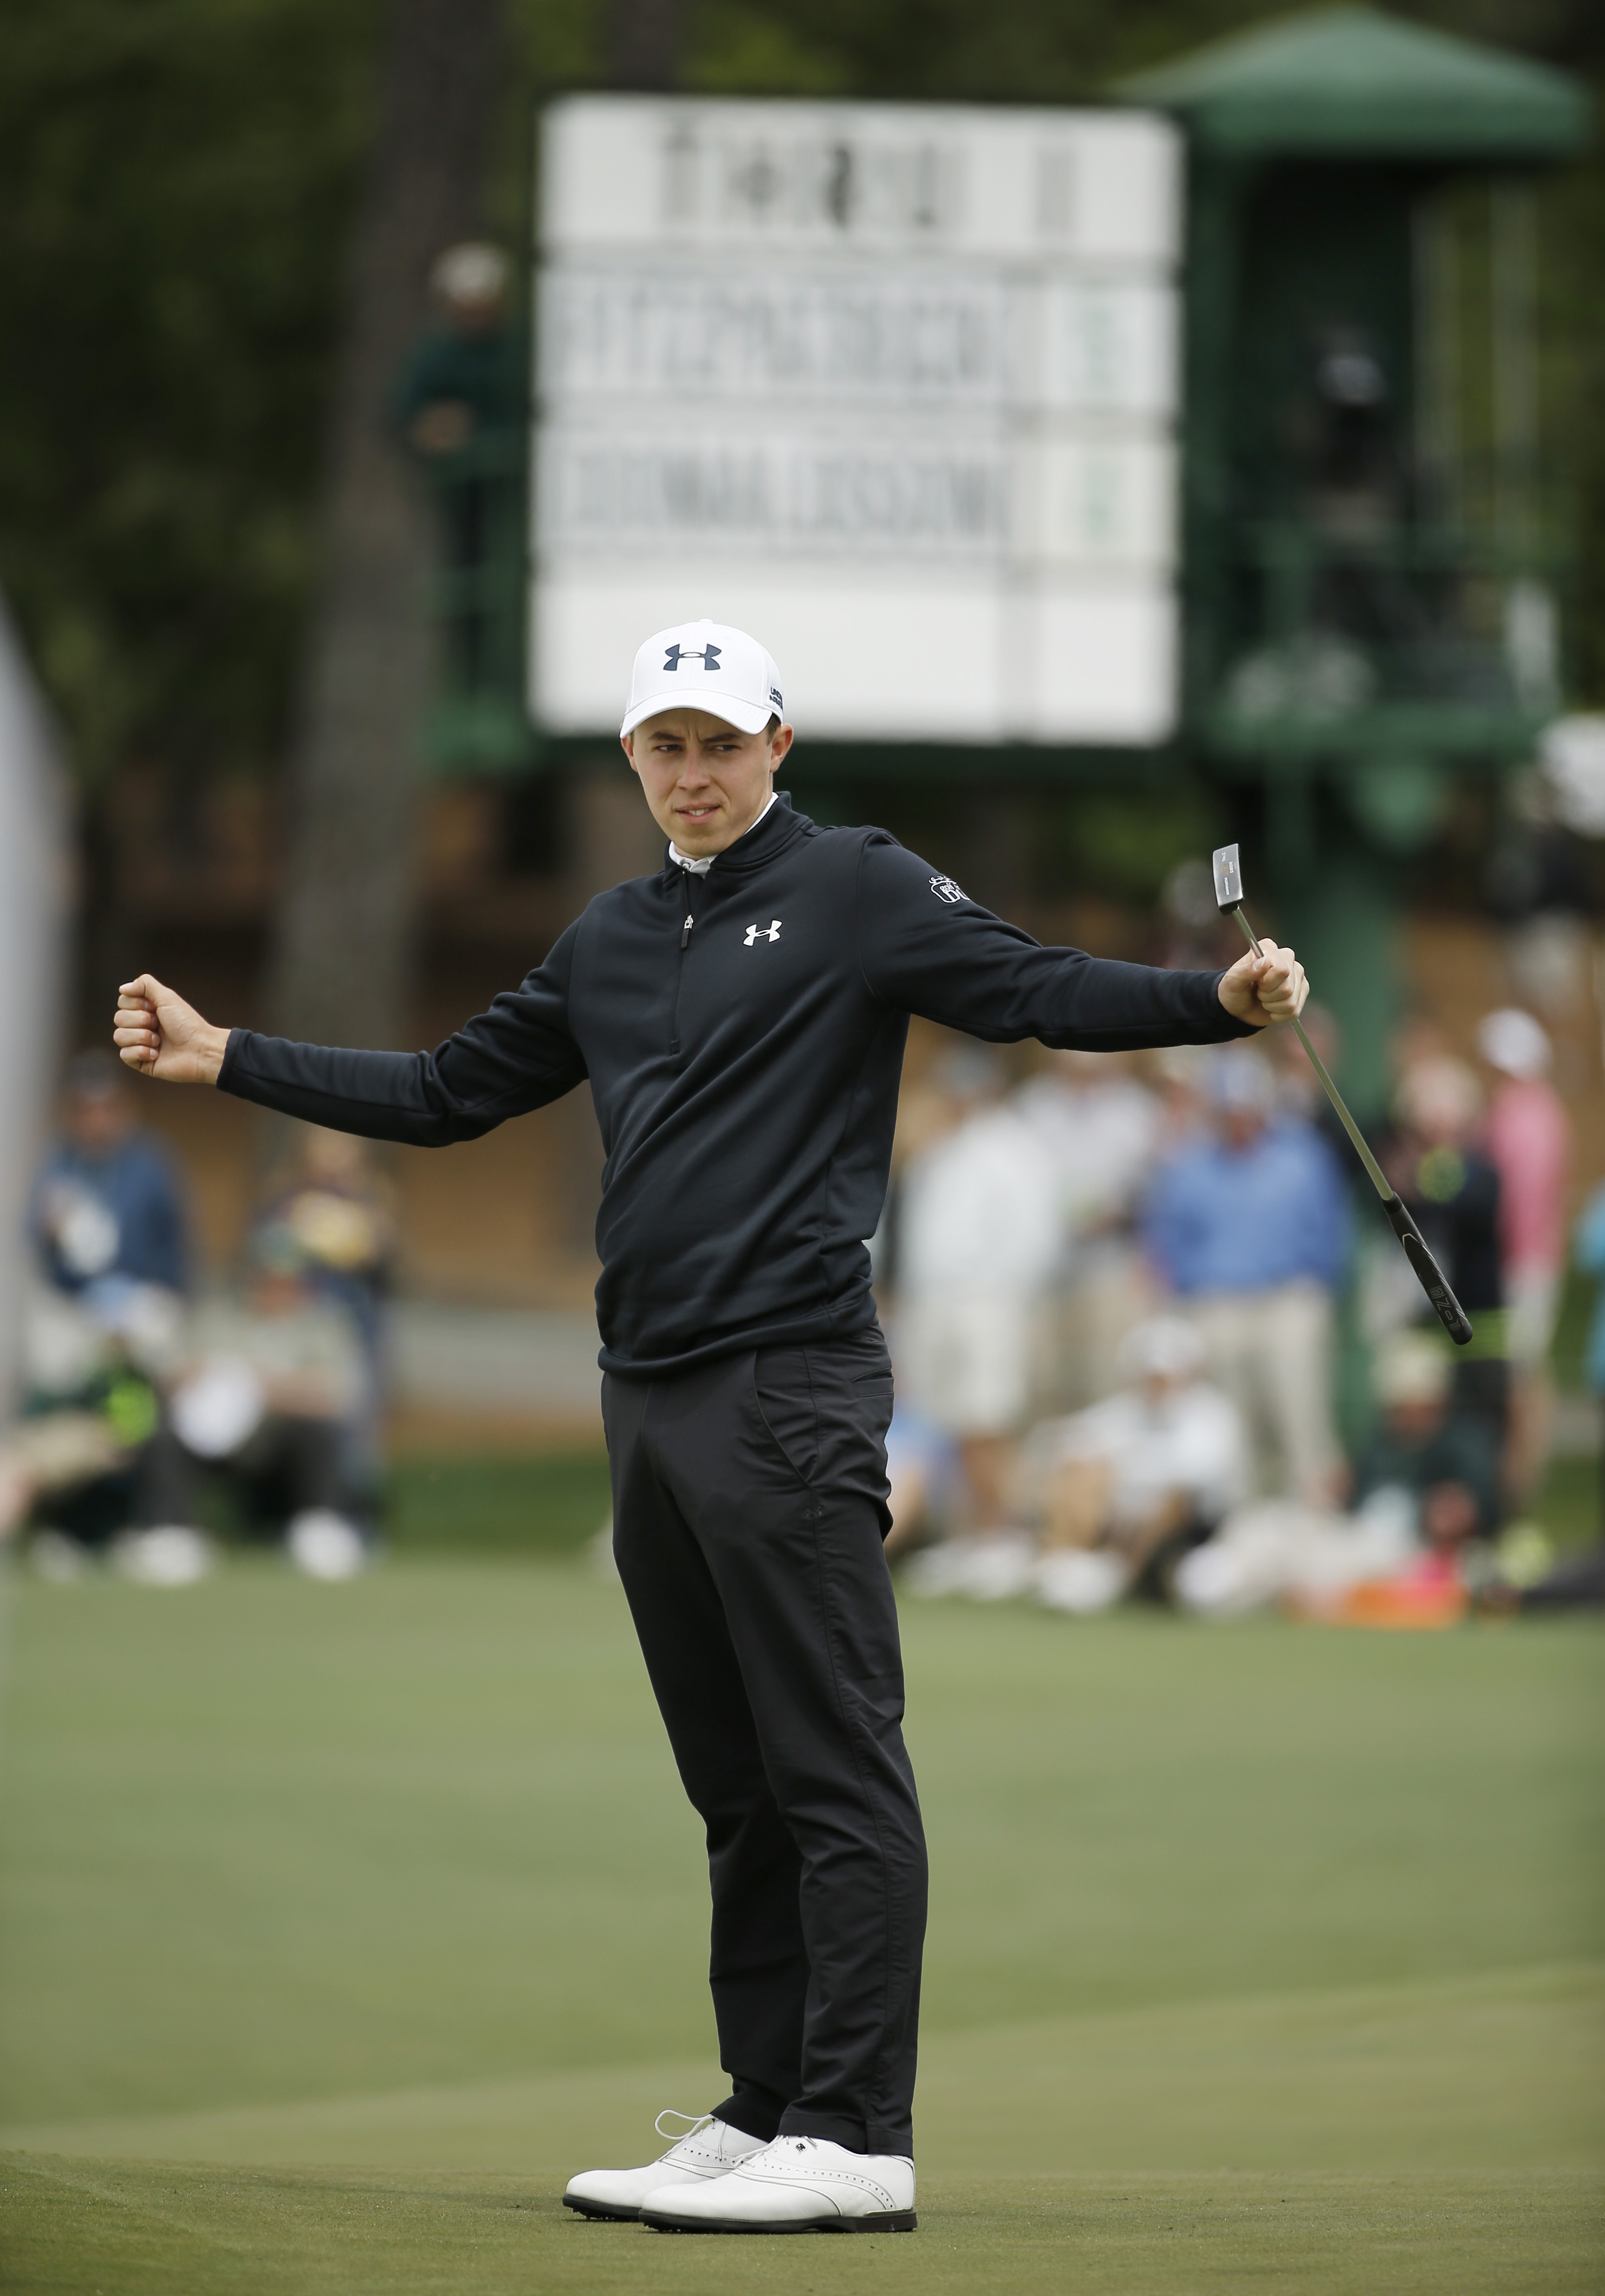 Matthew Fitzpatrick, of England, reacts to his putt on the second green during the final round of the Masters golf tournament Sunday, April 10, 2016, in Augusta, Ga. (AP Photo/Matt Slocum)